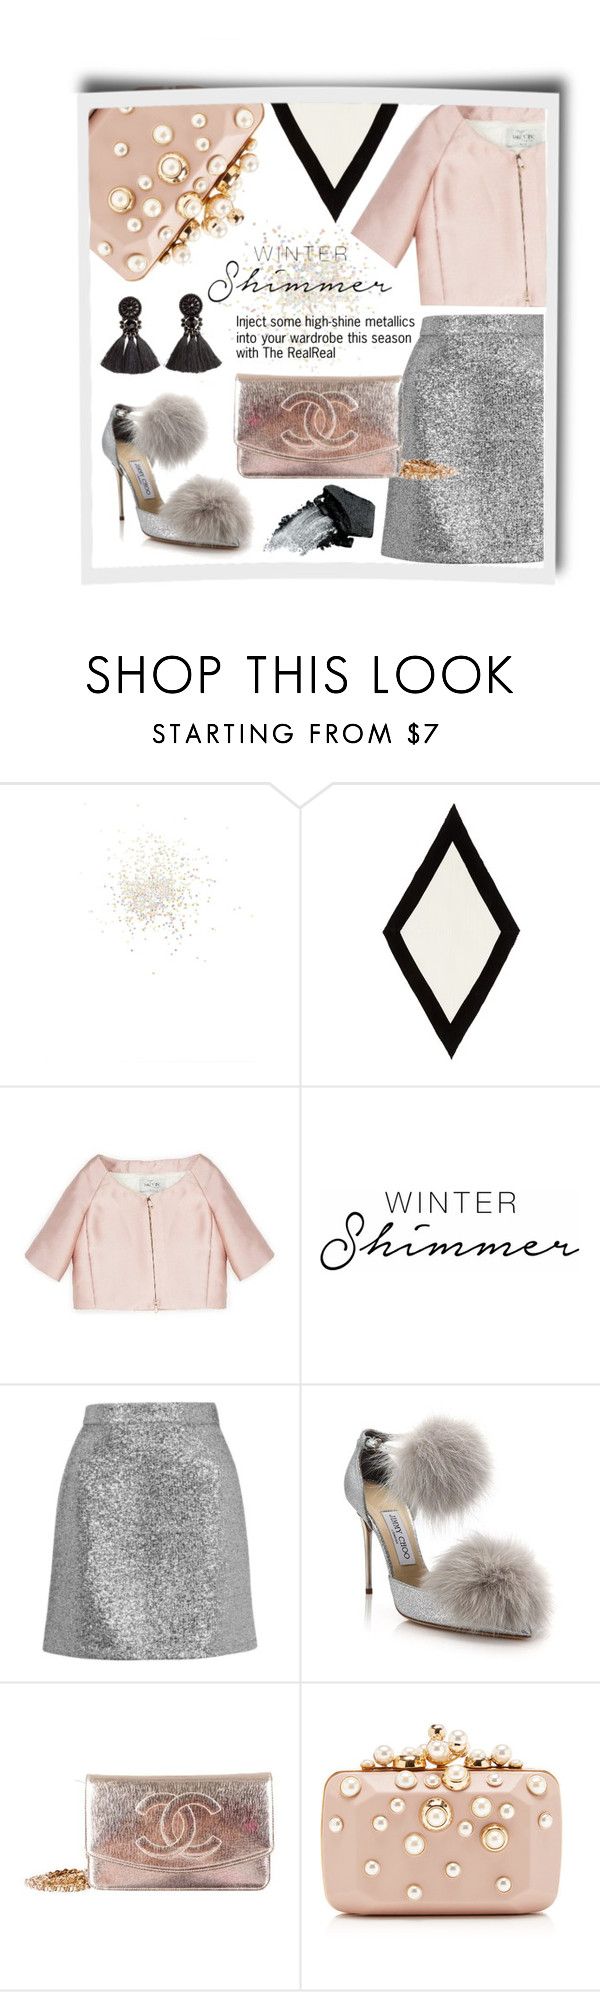 """""""Holiday Sparkle With The RealReal: Winter Pastels & Metallics"""" by theabstractlife ❤ liked on Polyvore featuring Topshop, Valentino, Jimmy Choo, Chanel, Elie Saab and Gorgeous Cosmetics"""